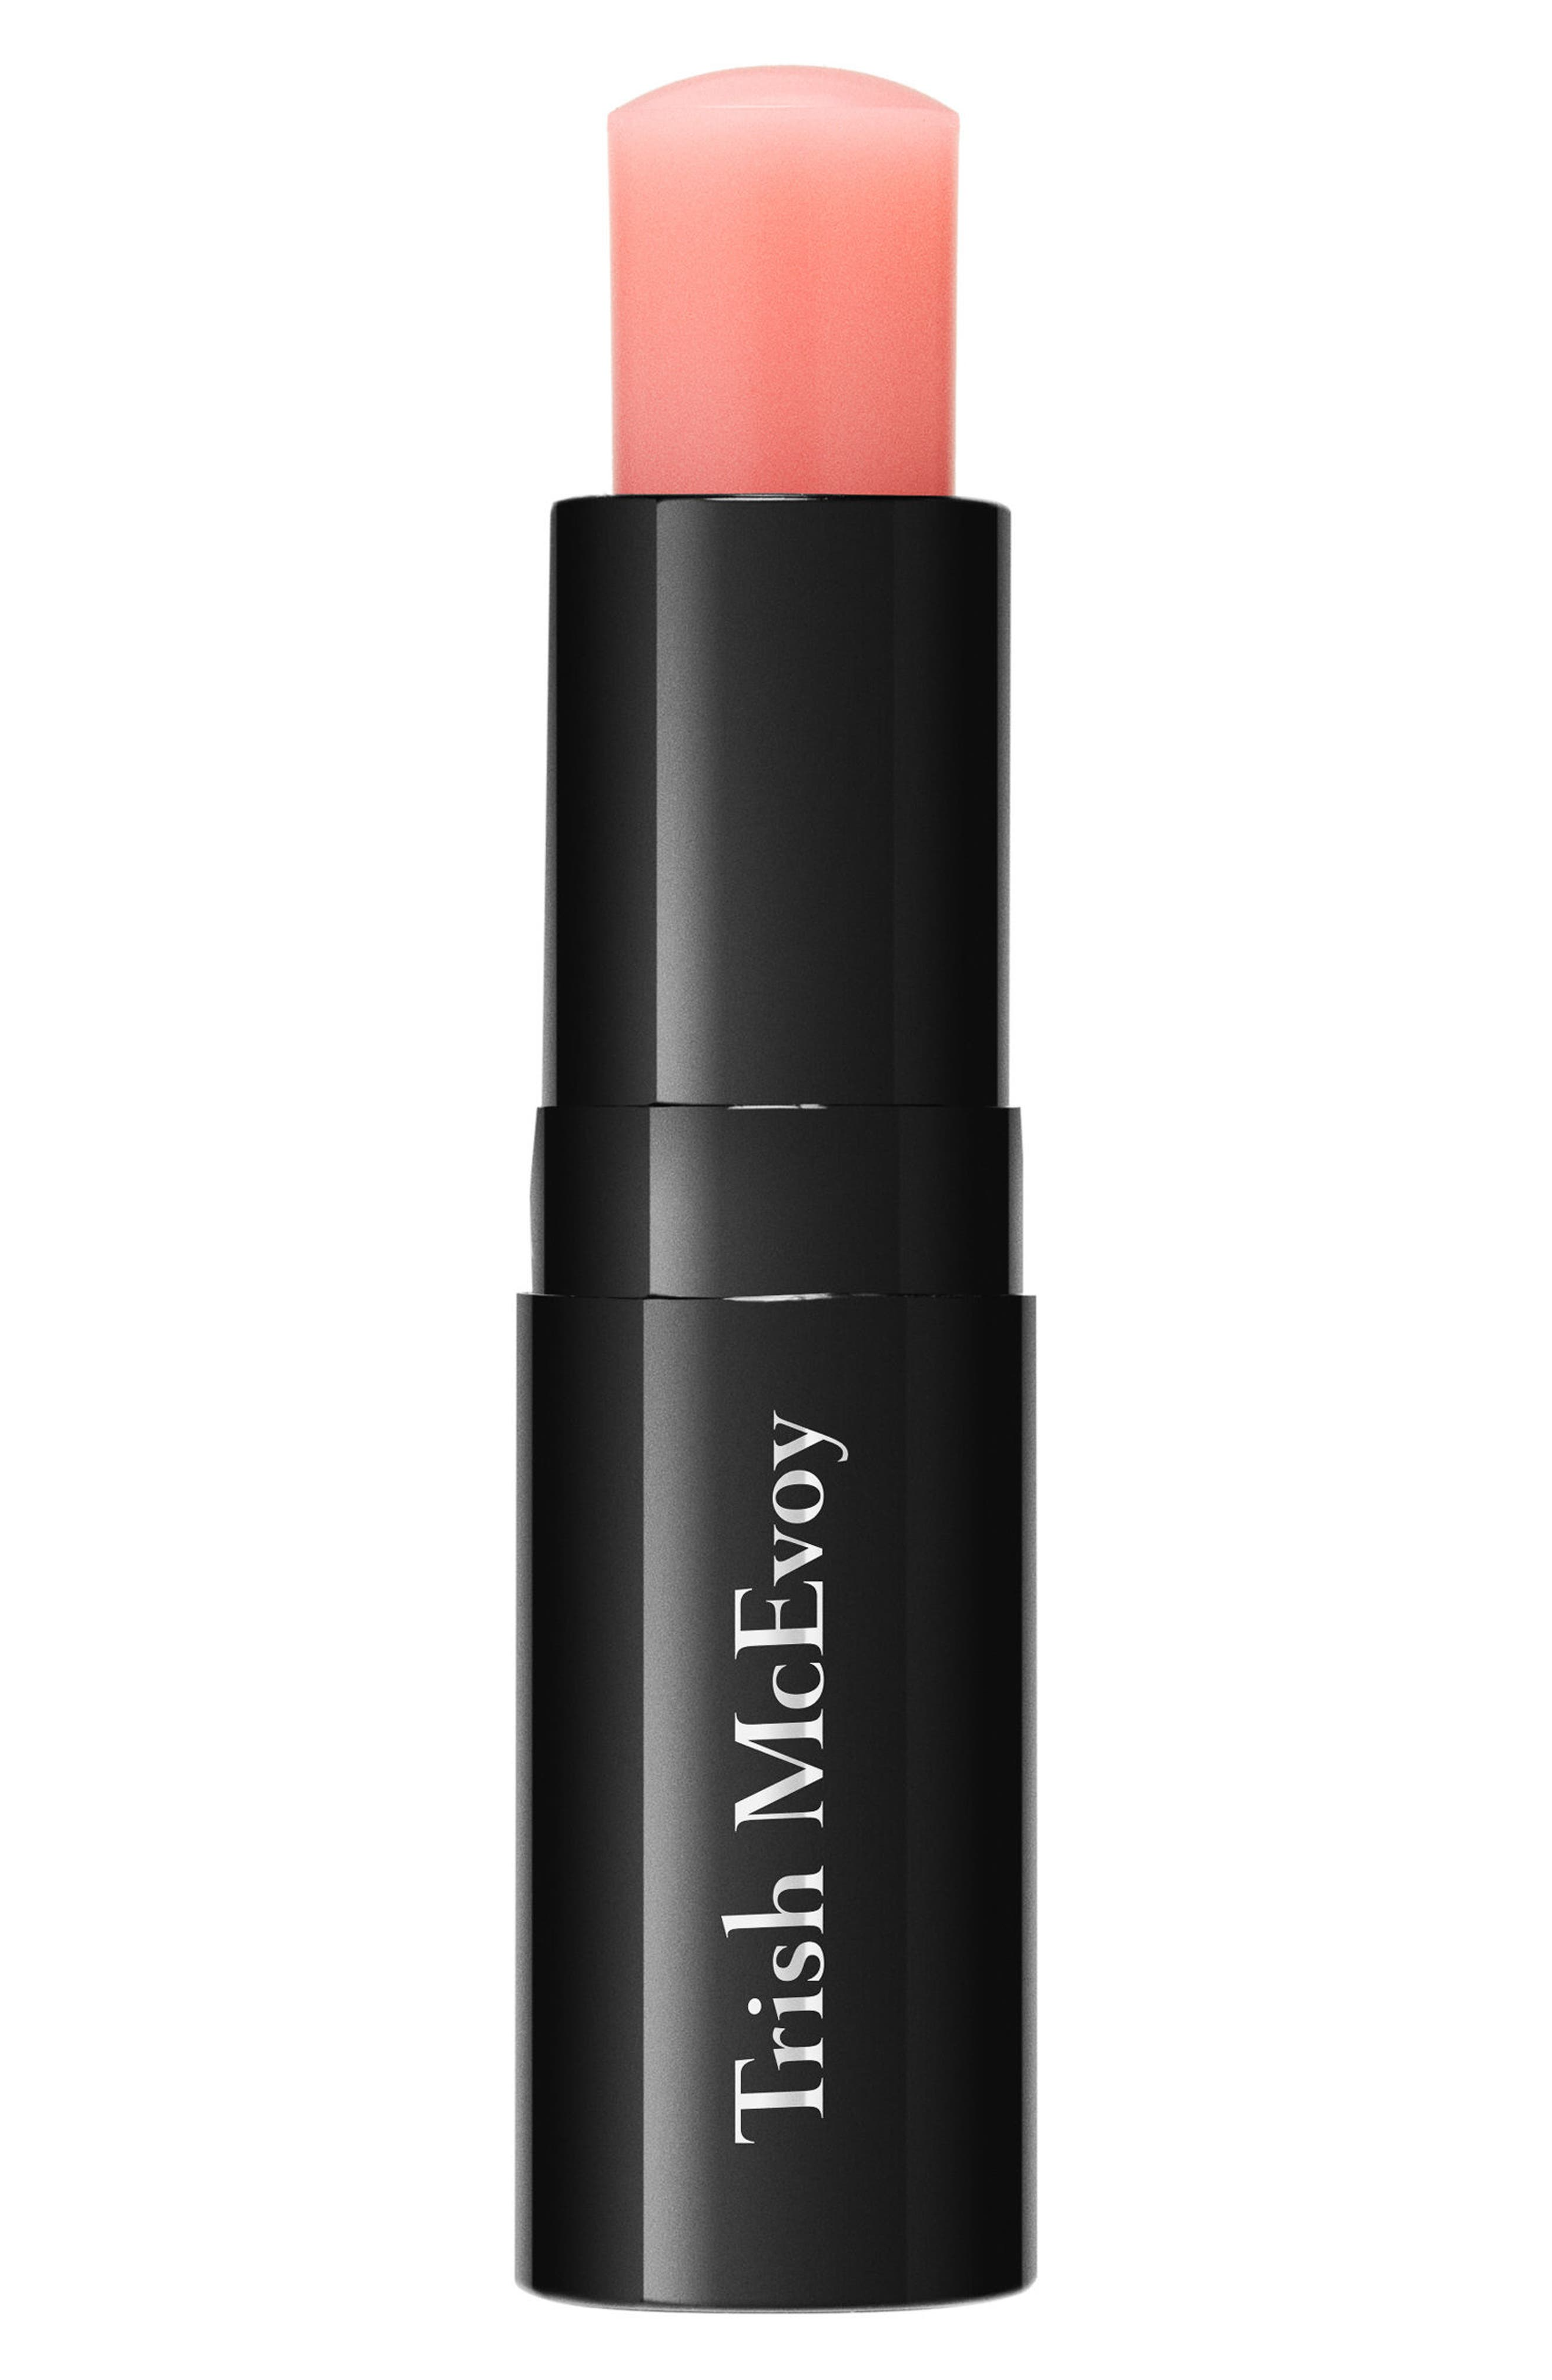 Lip Perfector Conditioning Balm,                             Main thumbnail 1, color,                             Pink